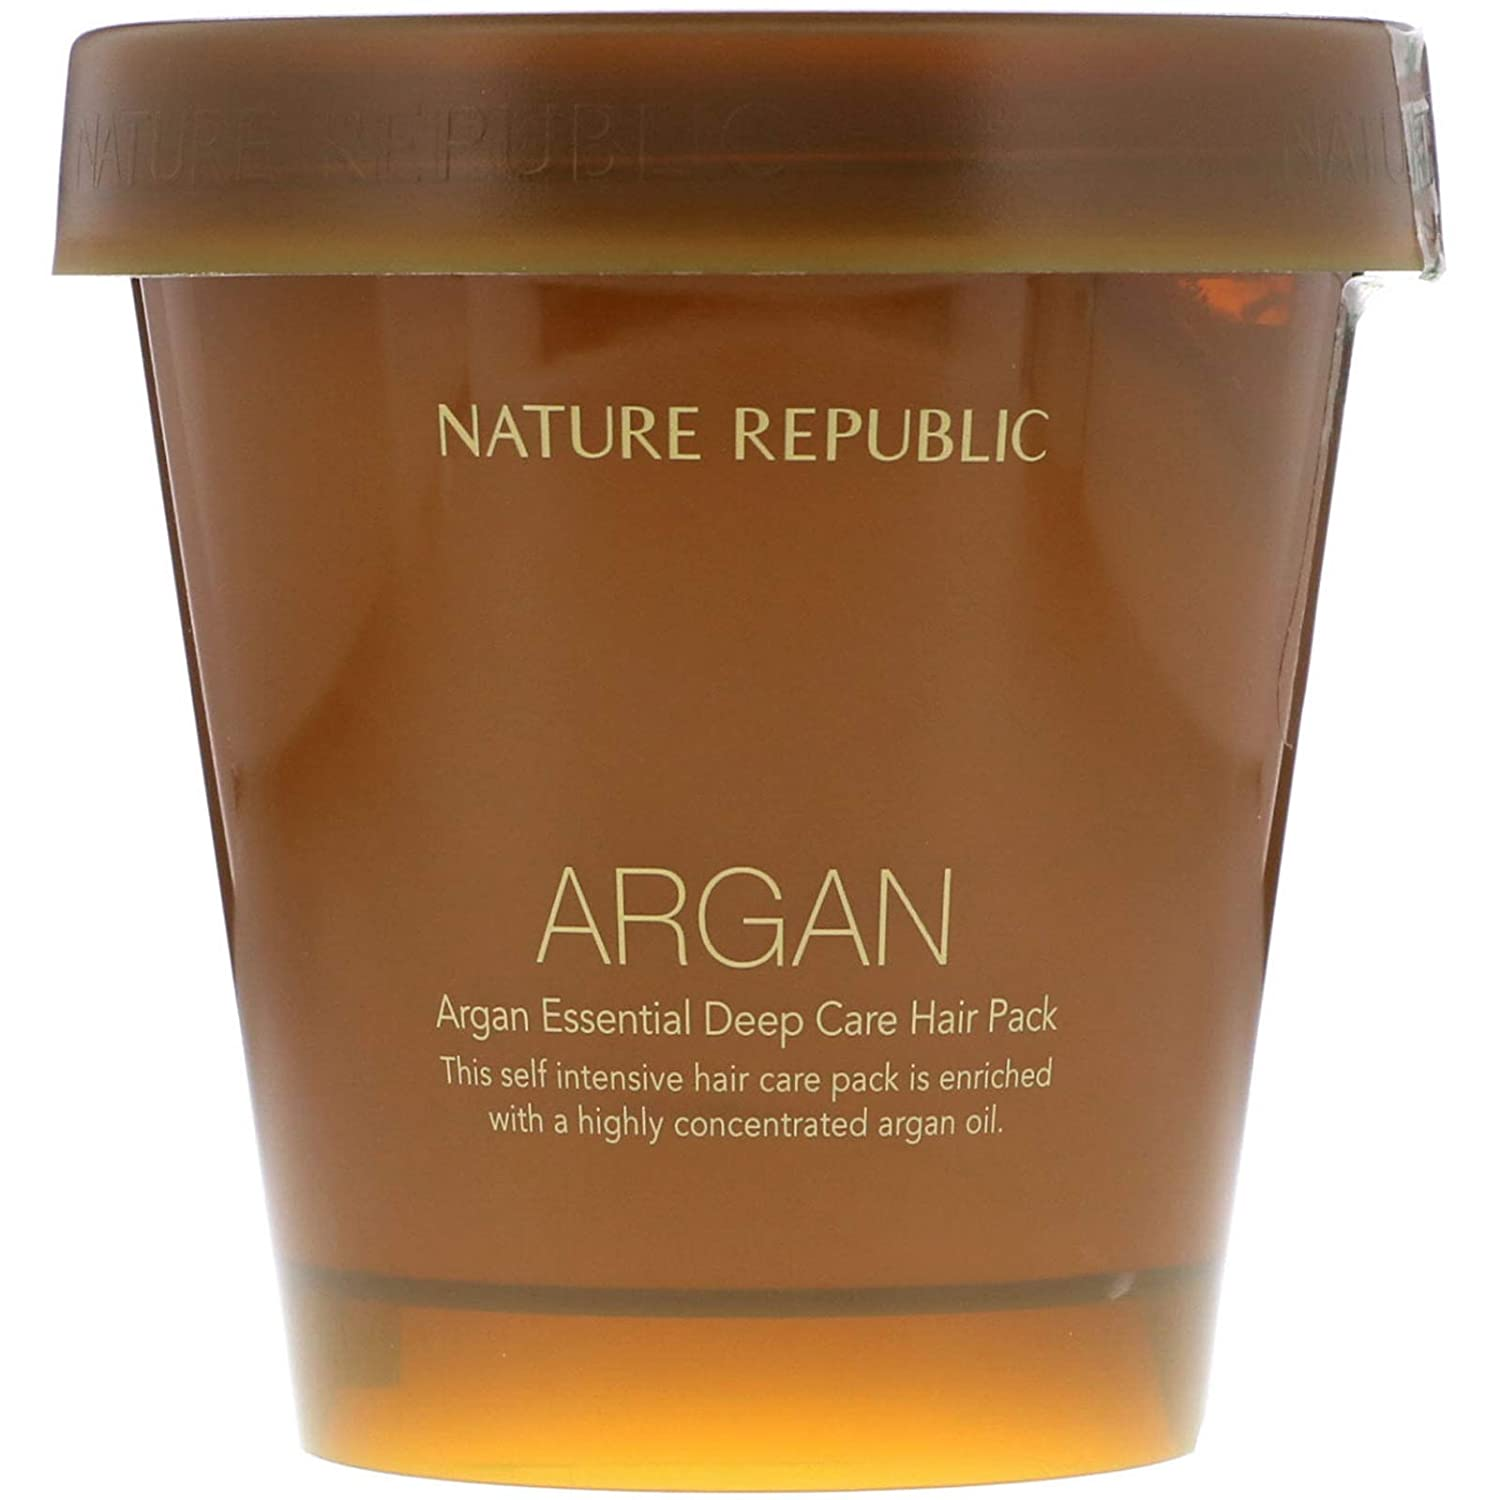 Nature Republic Argan Essential Deep Care Hair Pack 200 ml